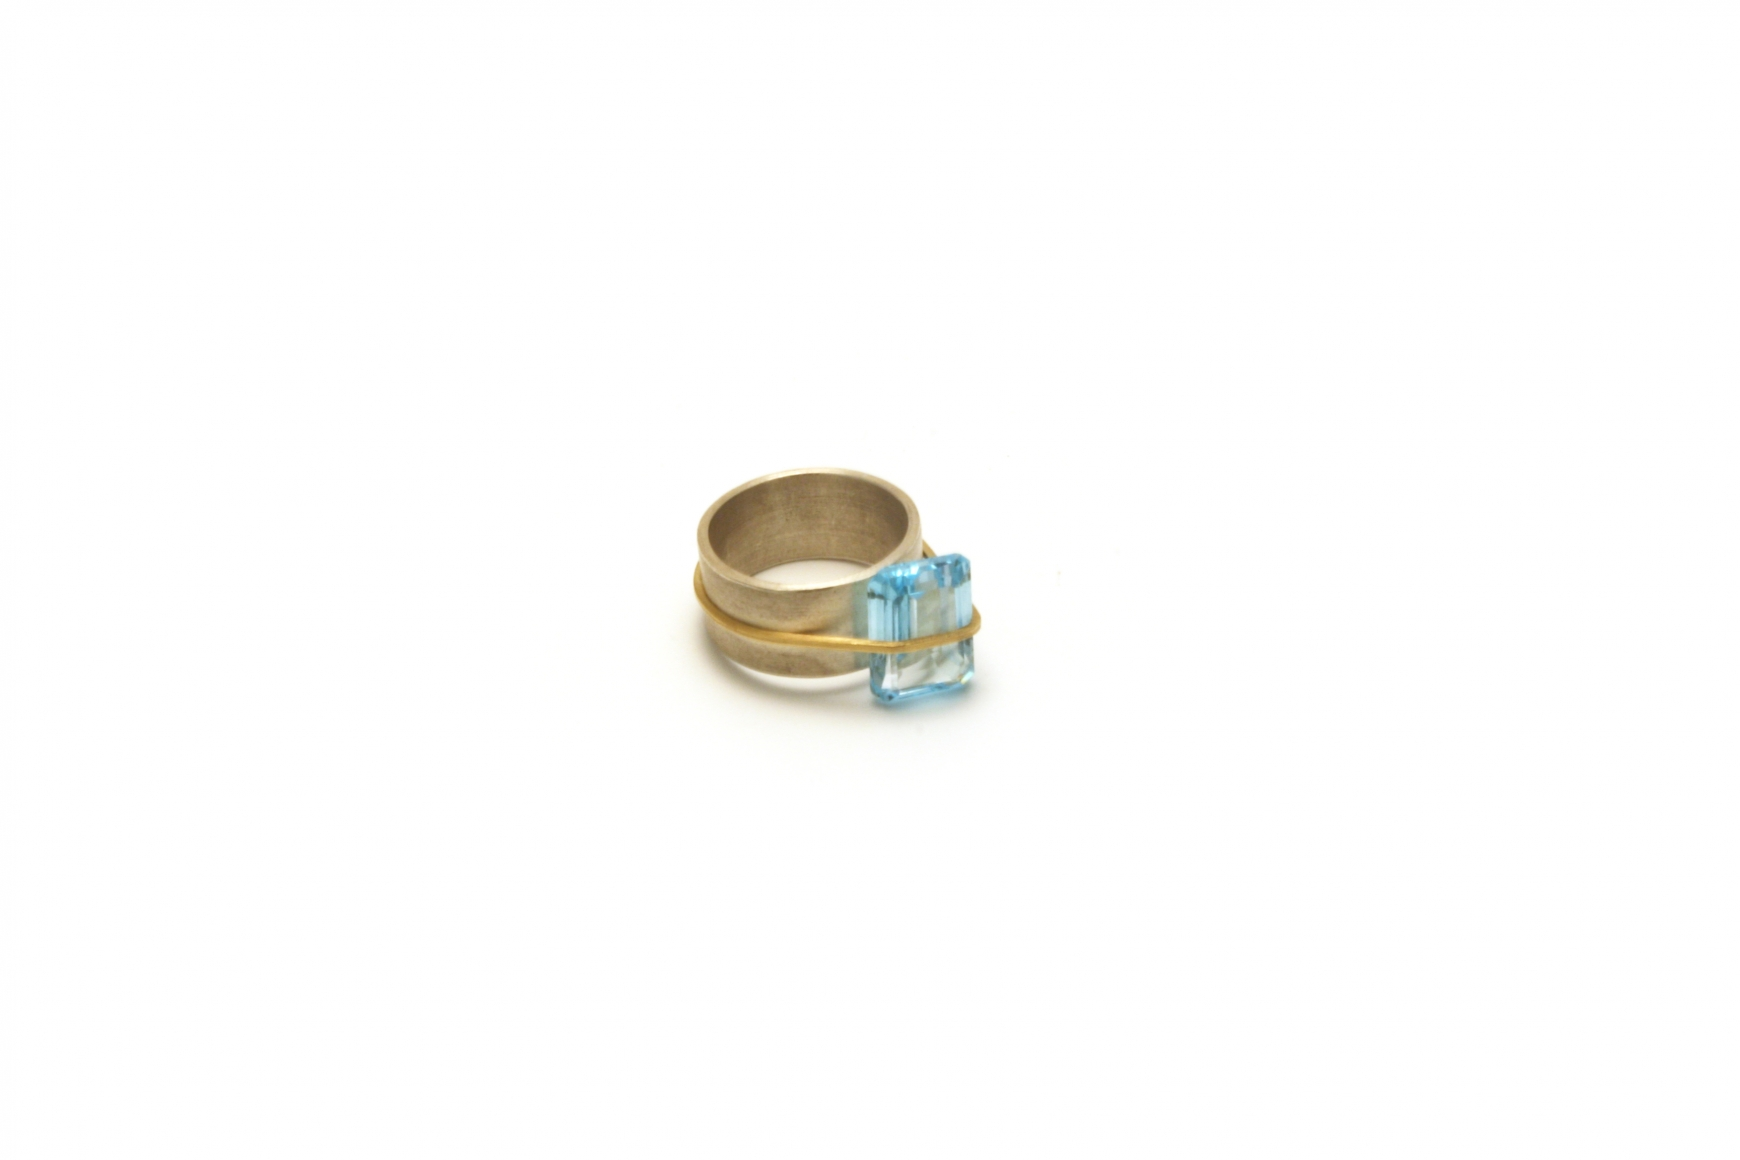 niessing wedding jewellery home glasgow fusion orro rings contemporary ring steel gold